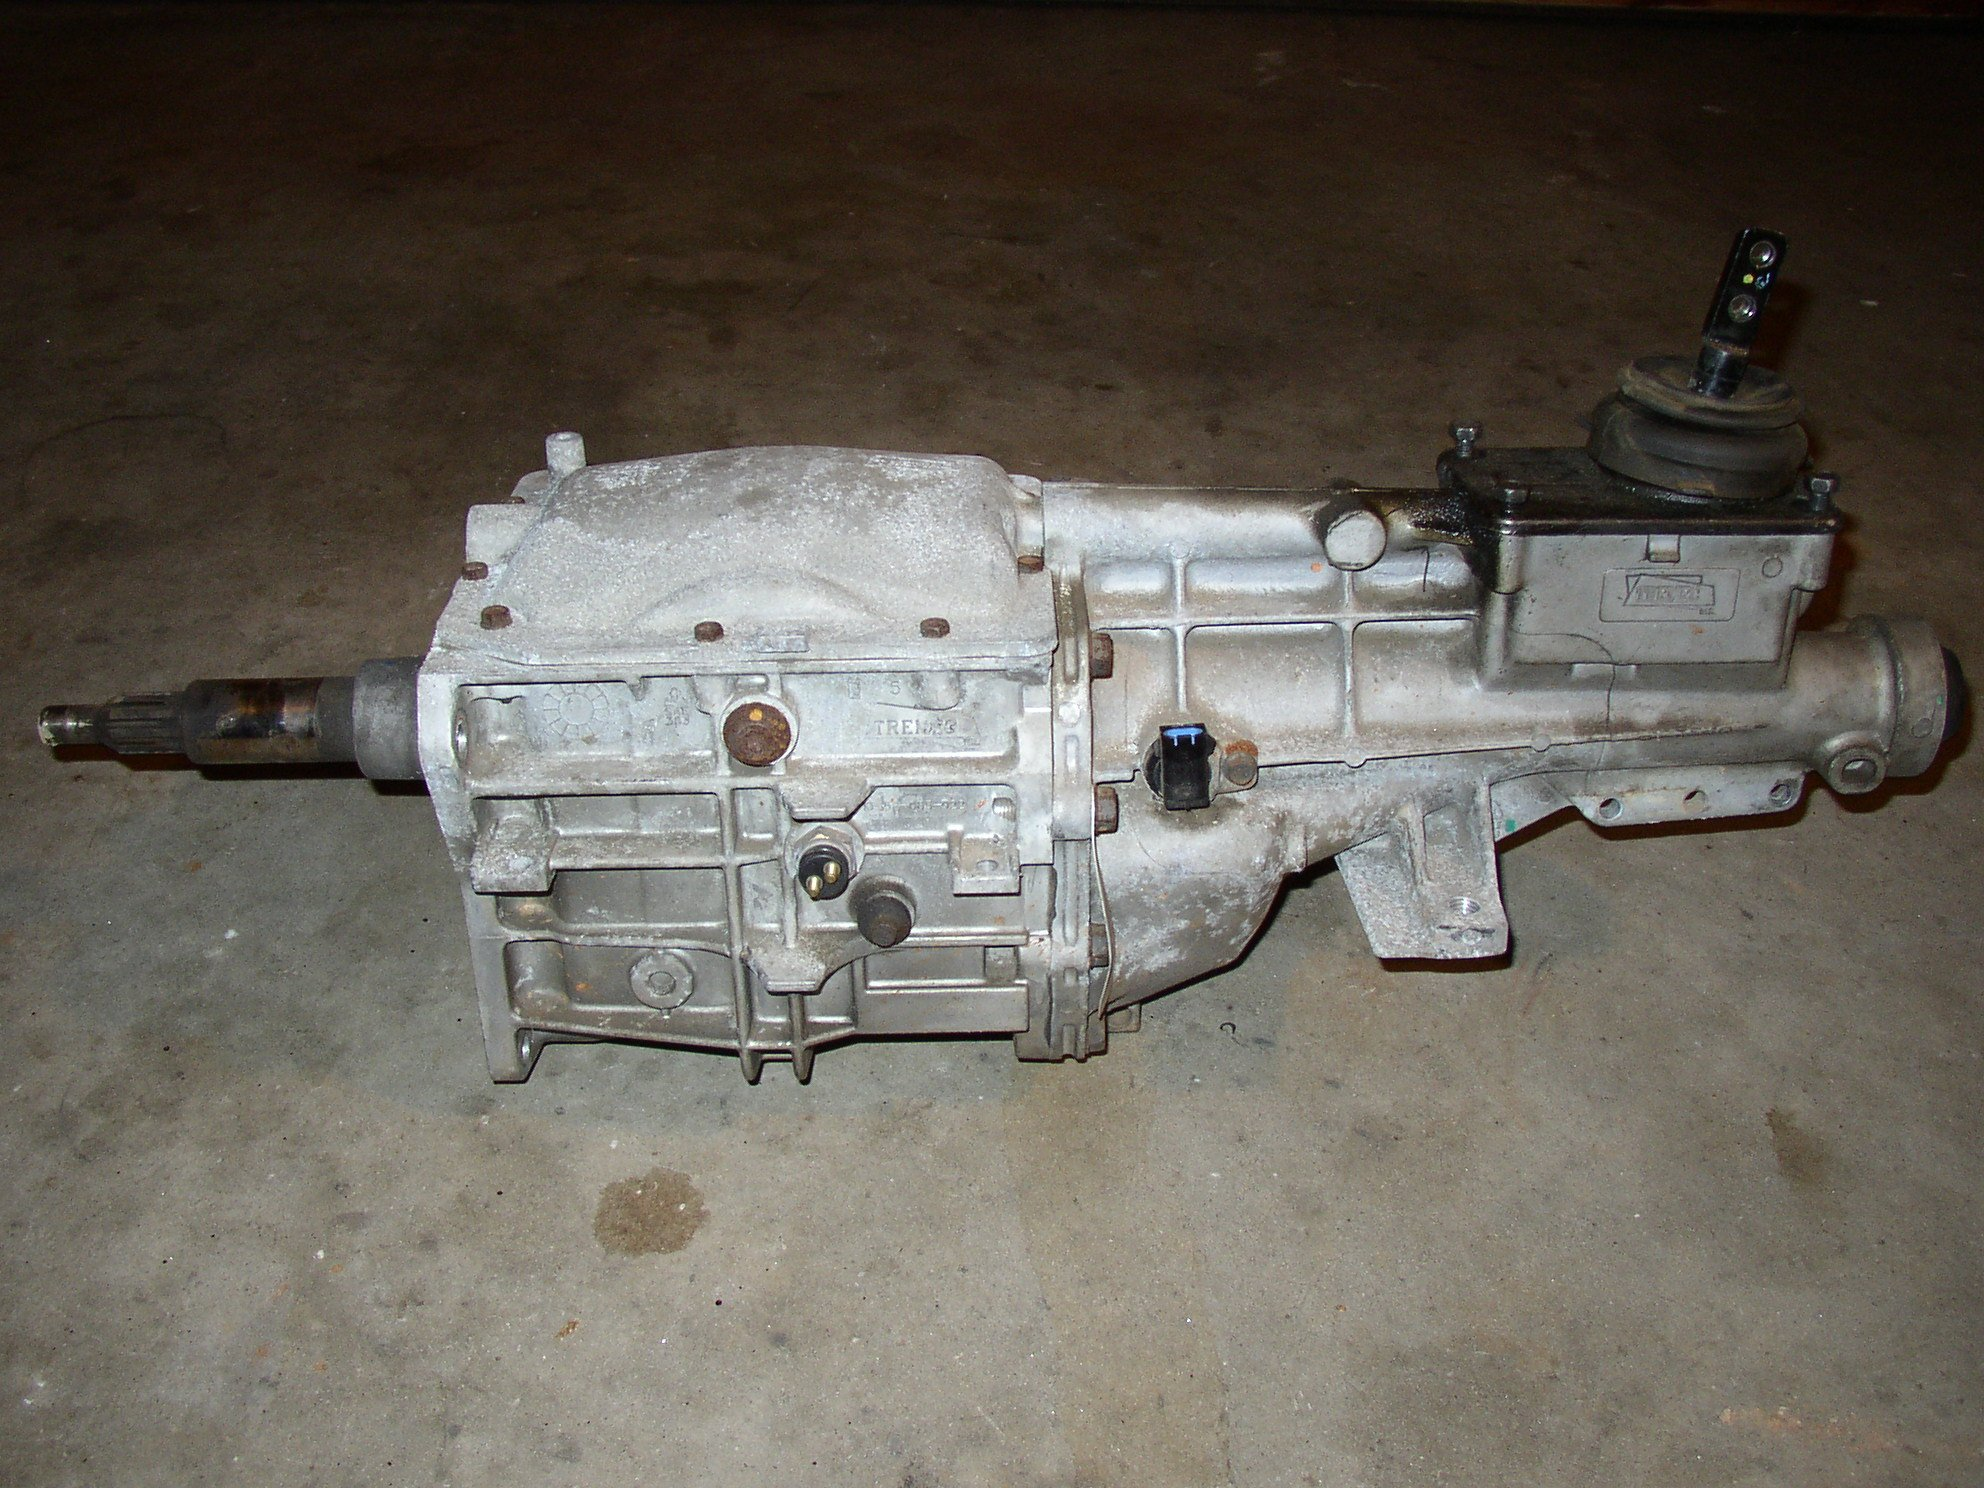 hight resolution of 90 ford 5 0 engine auto transmission diagram wiring diagram90 ford 5 0 engine auto transmission